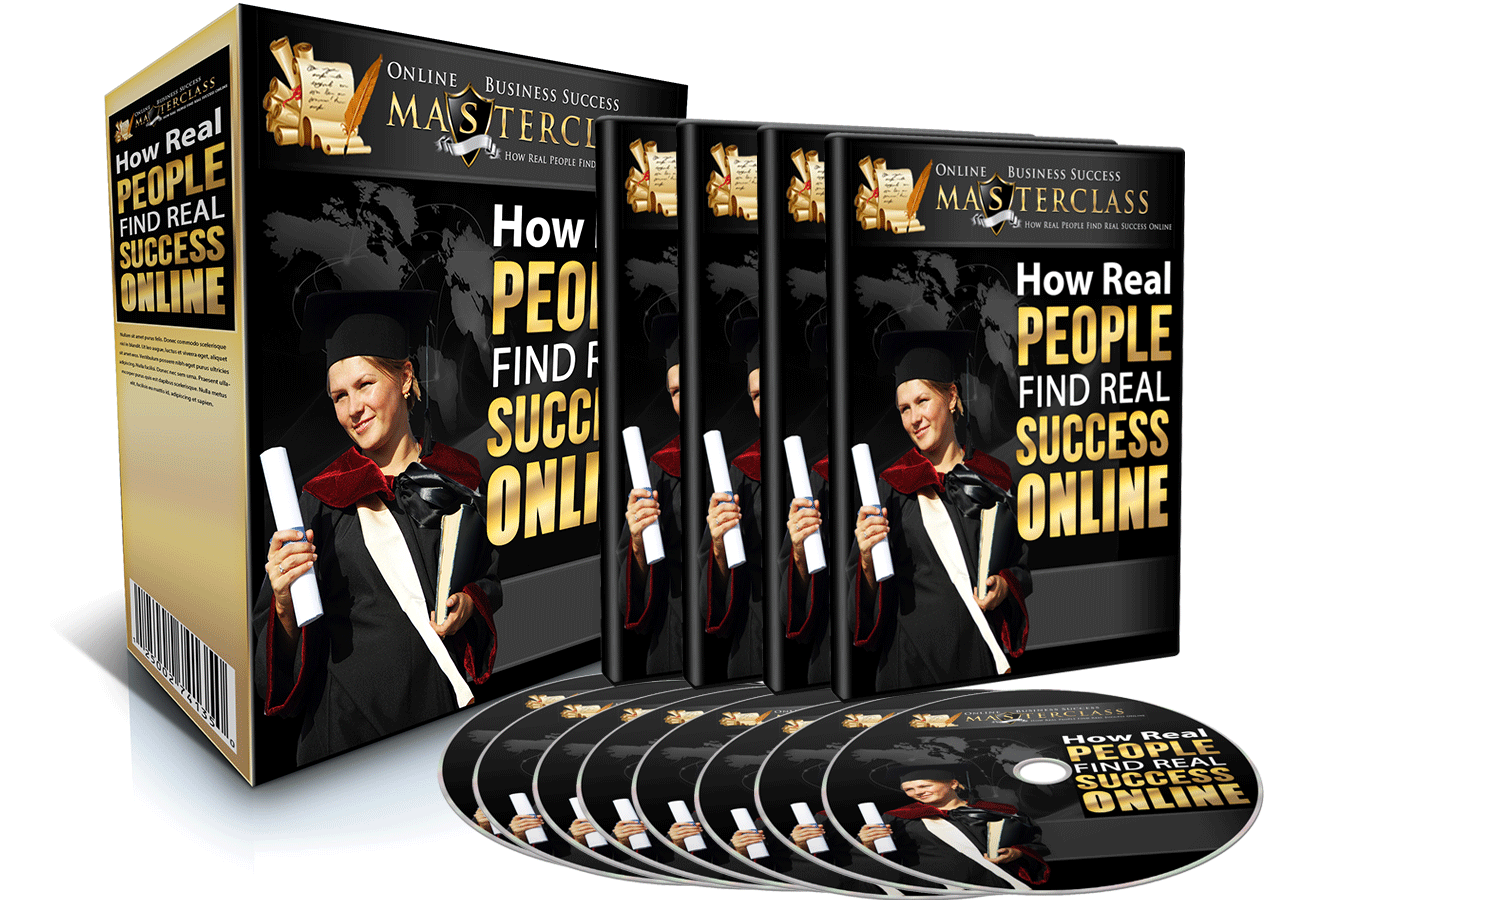 Online Business Success Masterclass